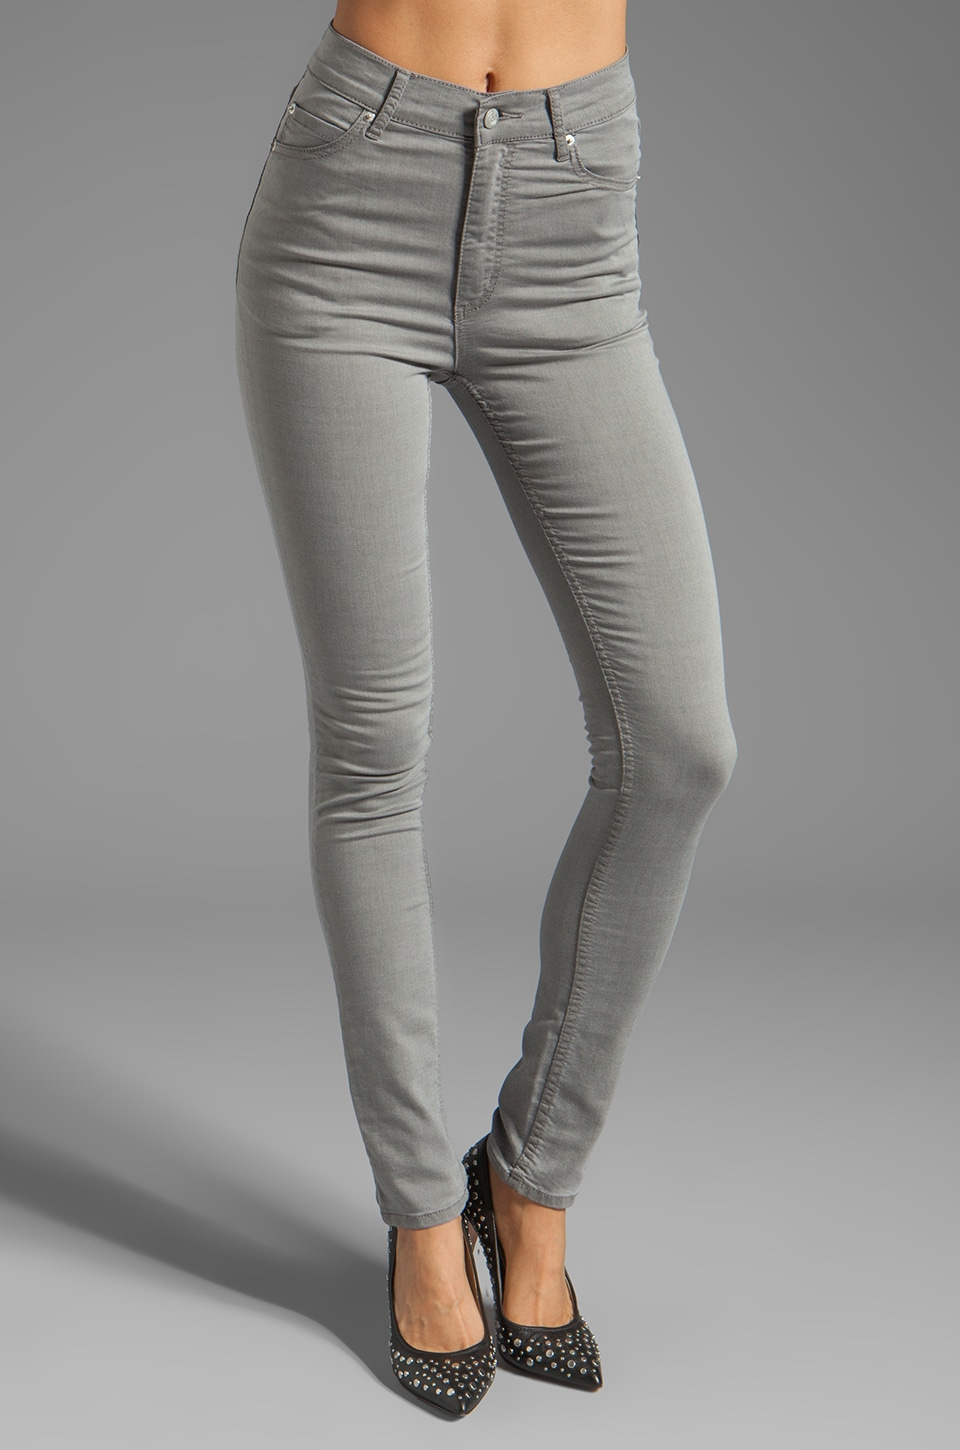 Cheap Monday Second Skin Jeans in Heavy Washed Grey